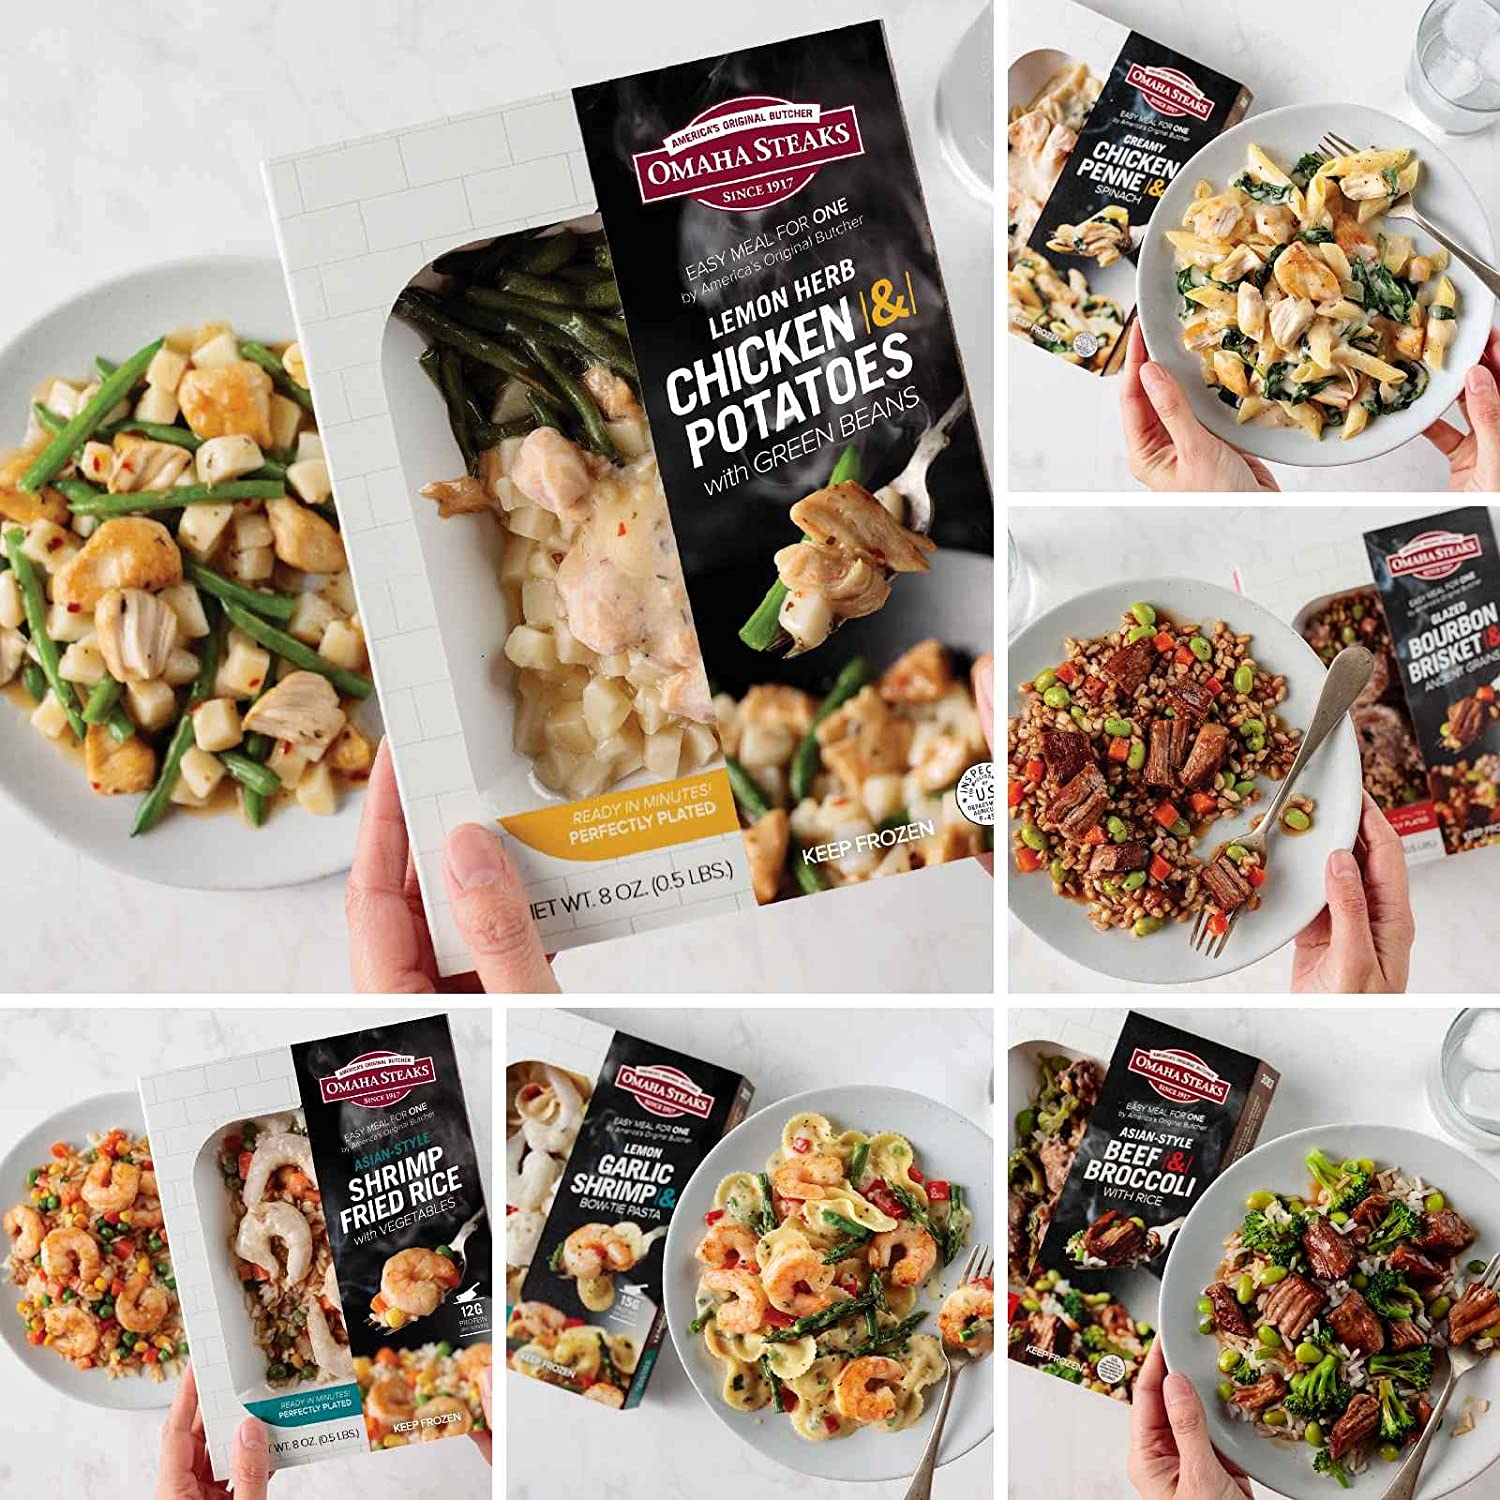 Quick and Easy Package from Omaha Steaks (Single Serve Meal: Lemon Herb Chicken & Potatoes, Single Serve Meal: Shrimp Fried Rice, Single Serve Meal: Lemon Garlic Shrimp, and more)